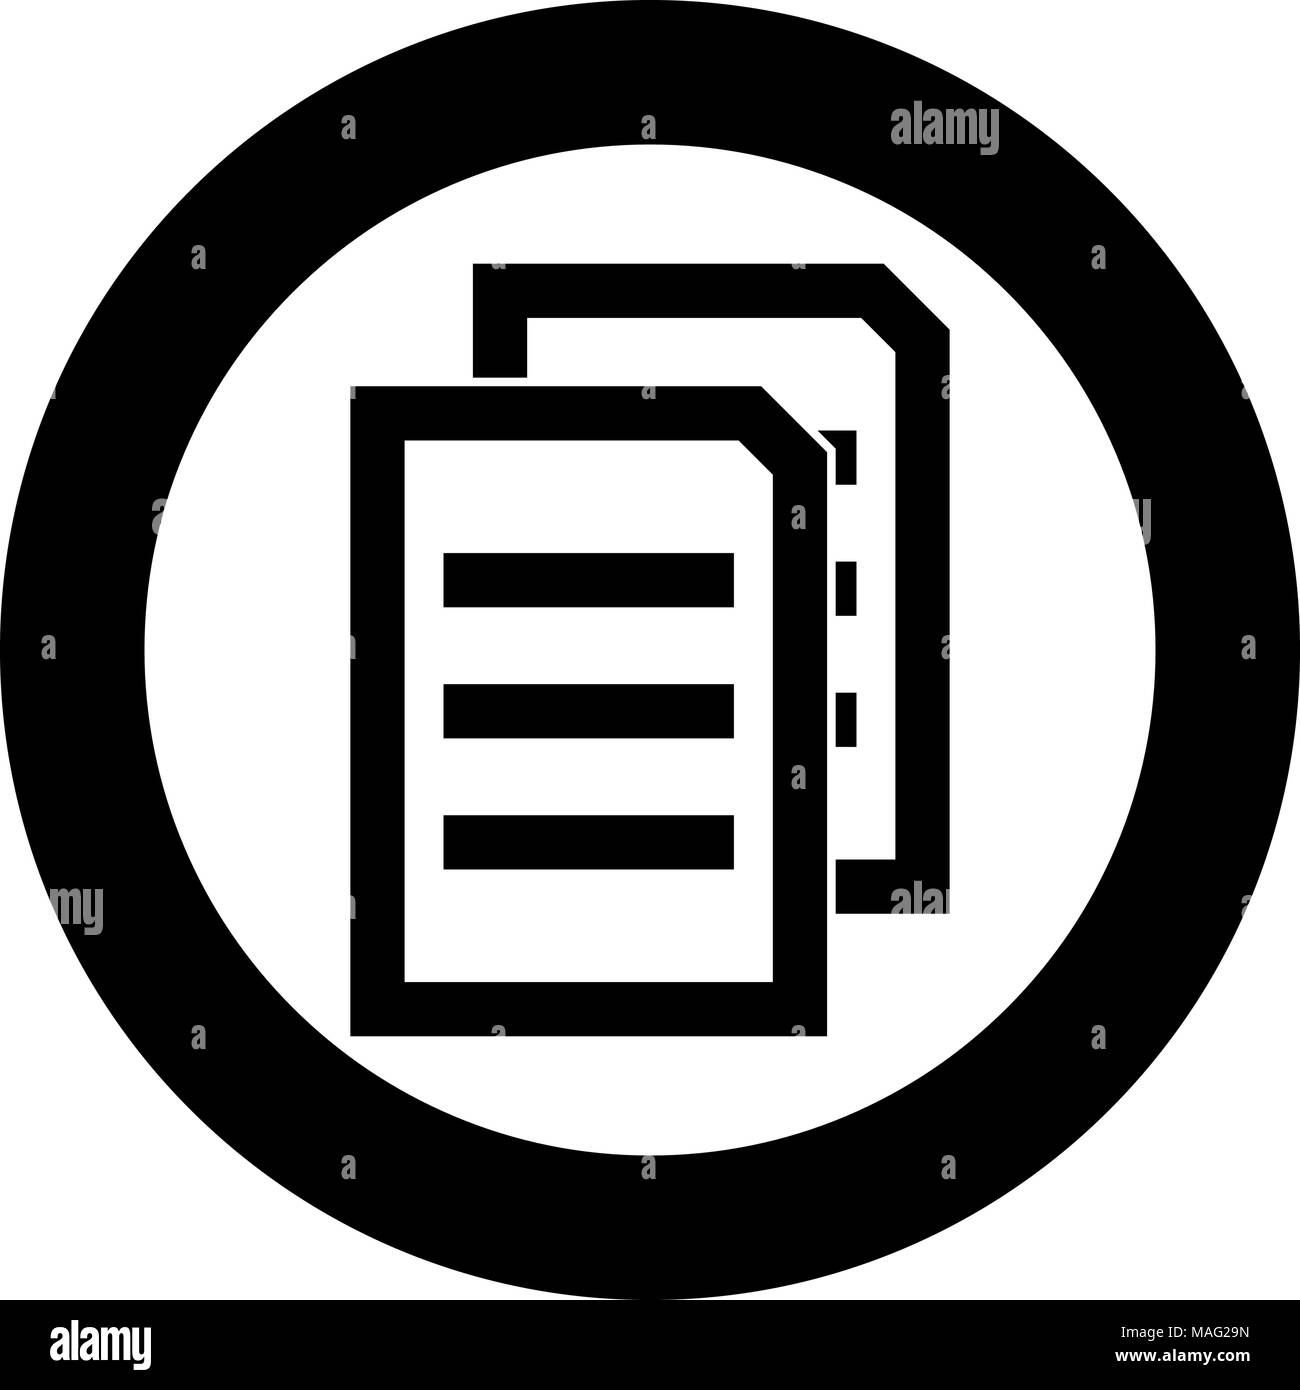 two sheets of document black icon in circle vector illustration isolated